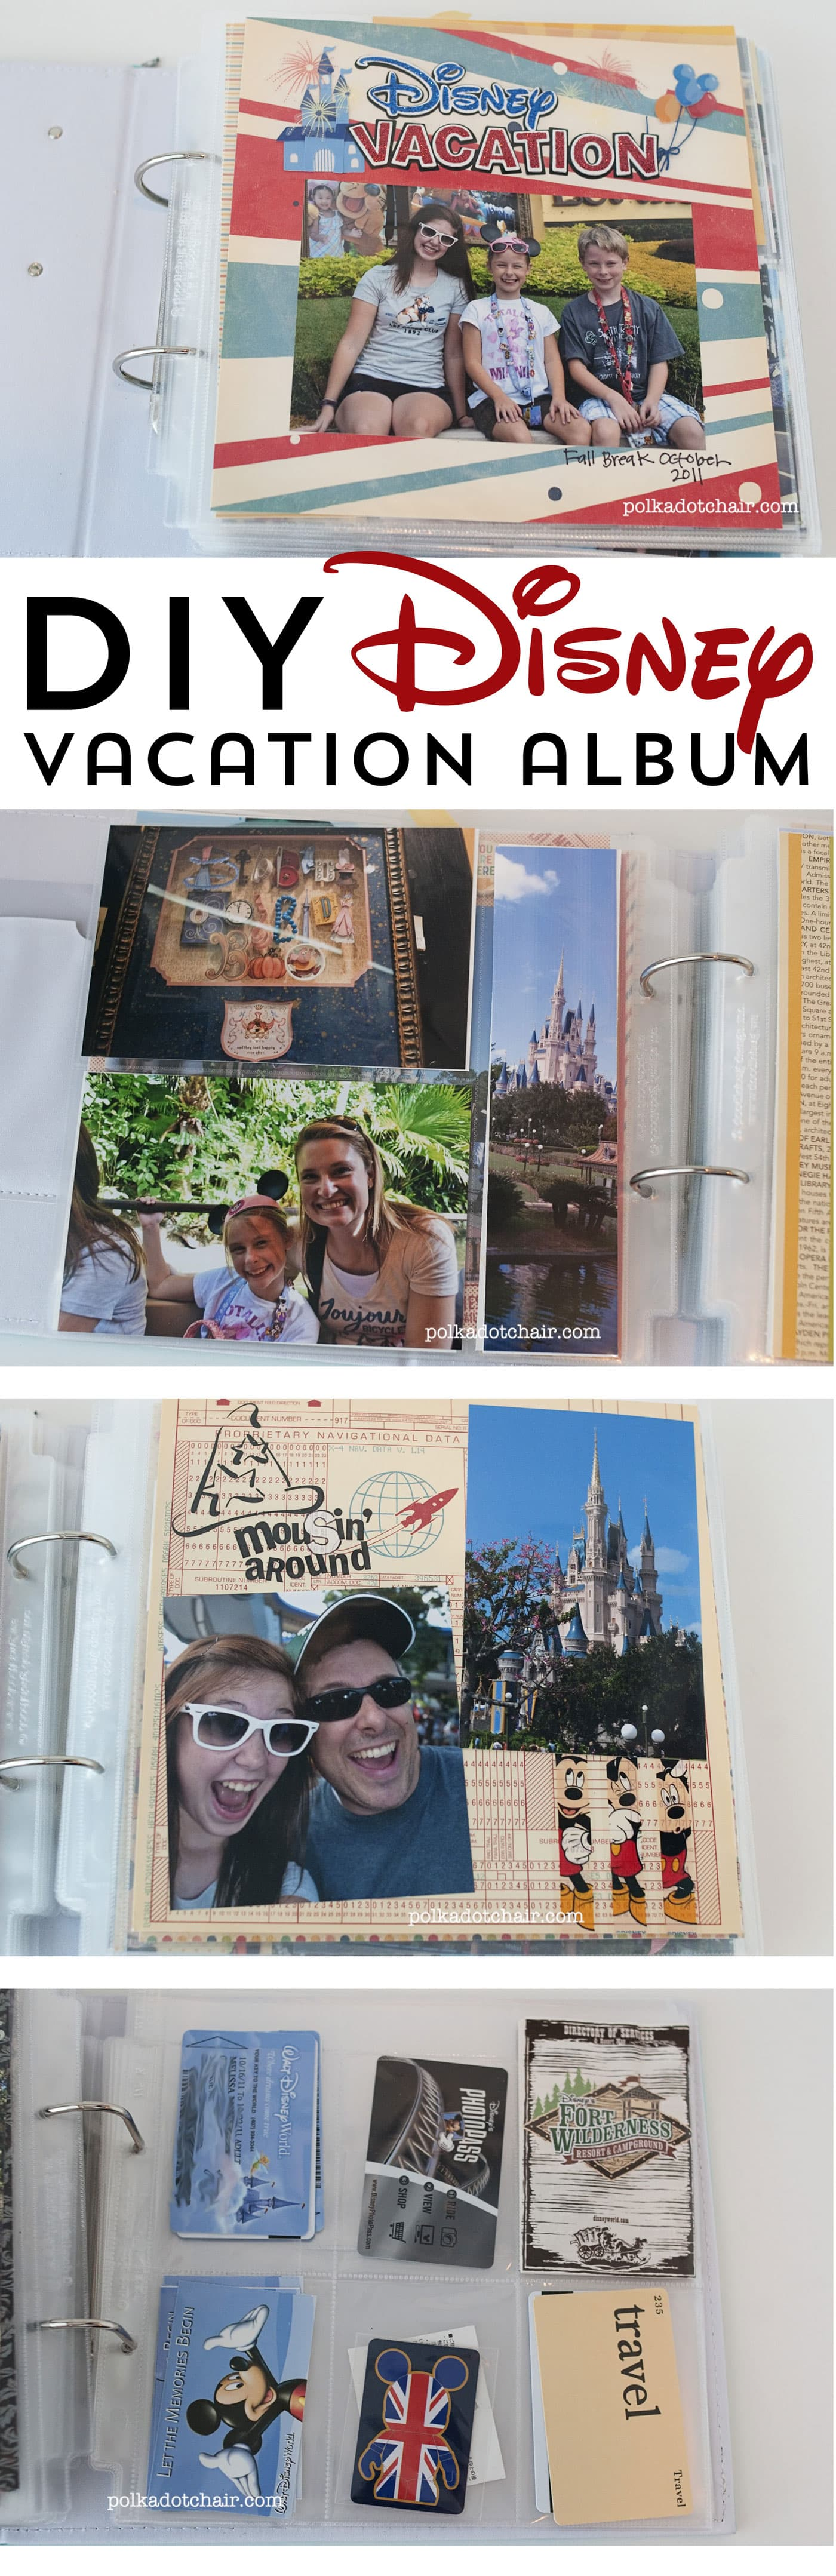 Cute and Simple DIY Disney Vacation album ideas to try.